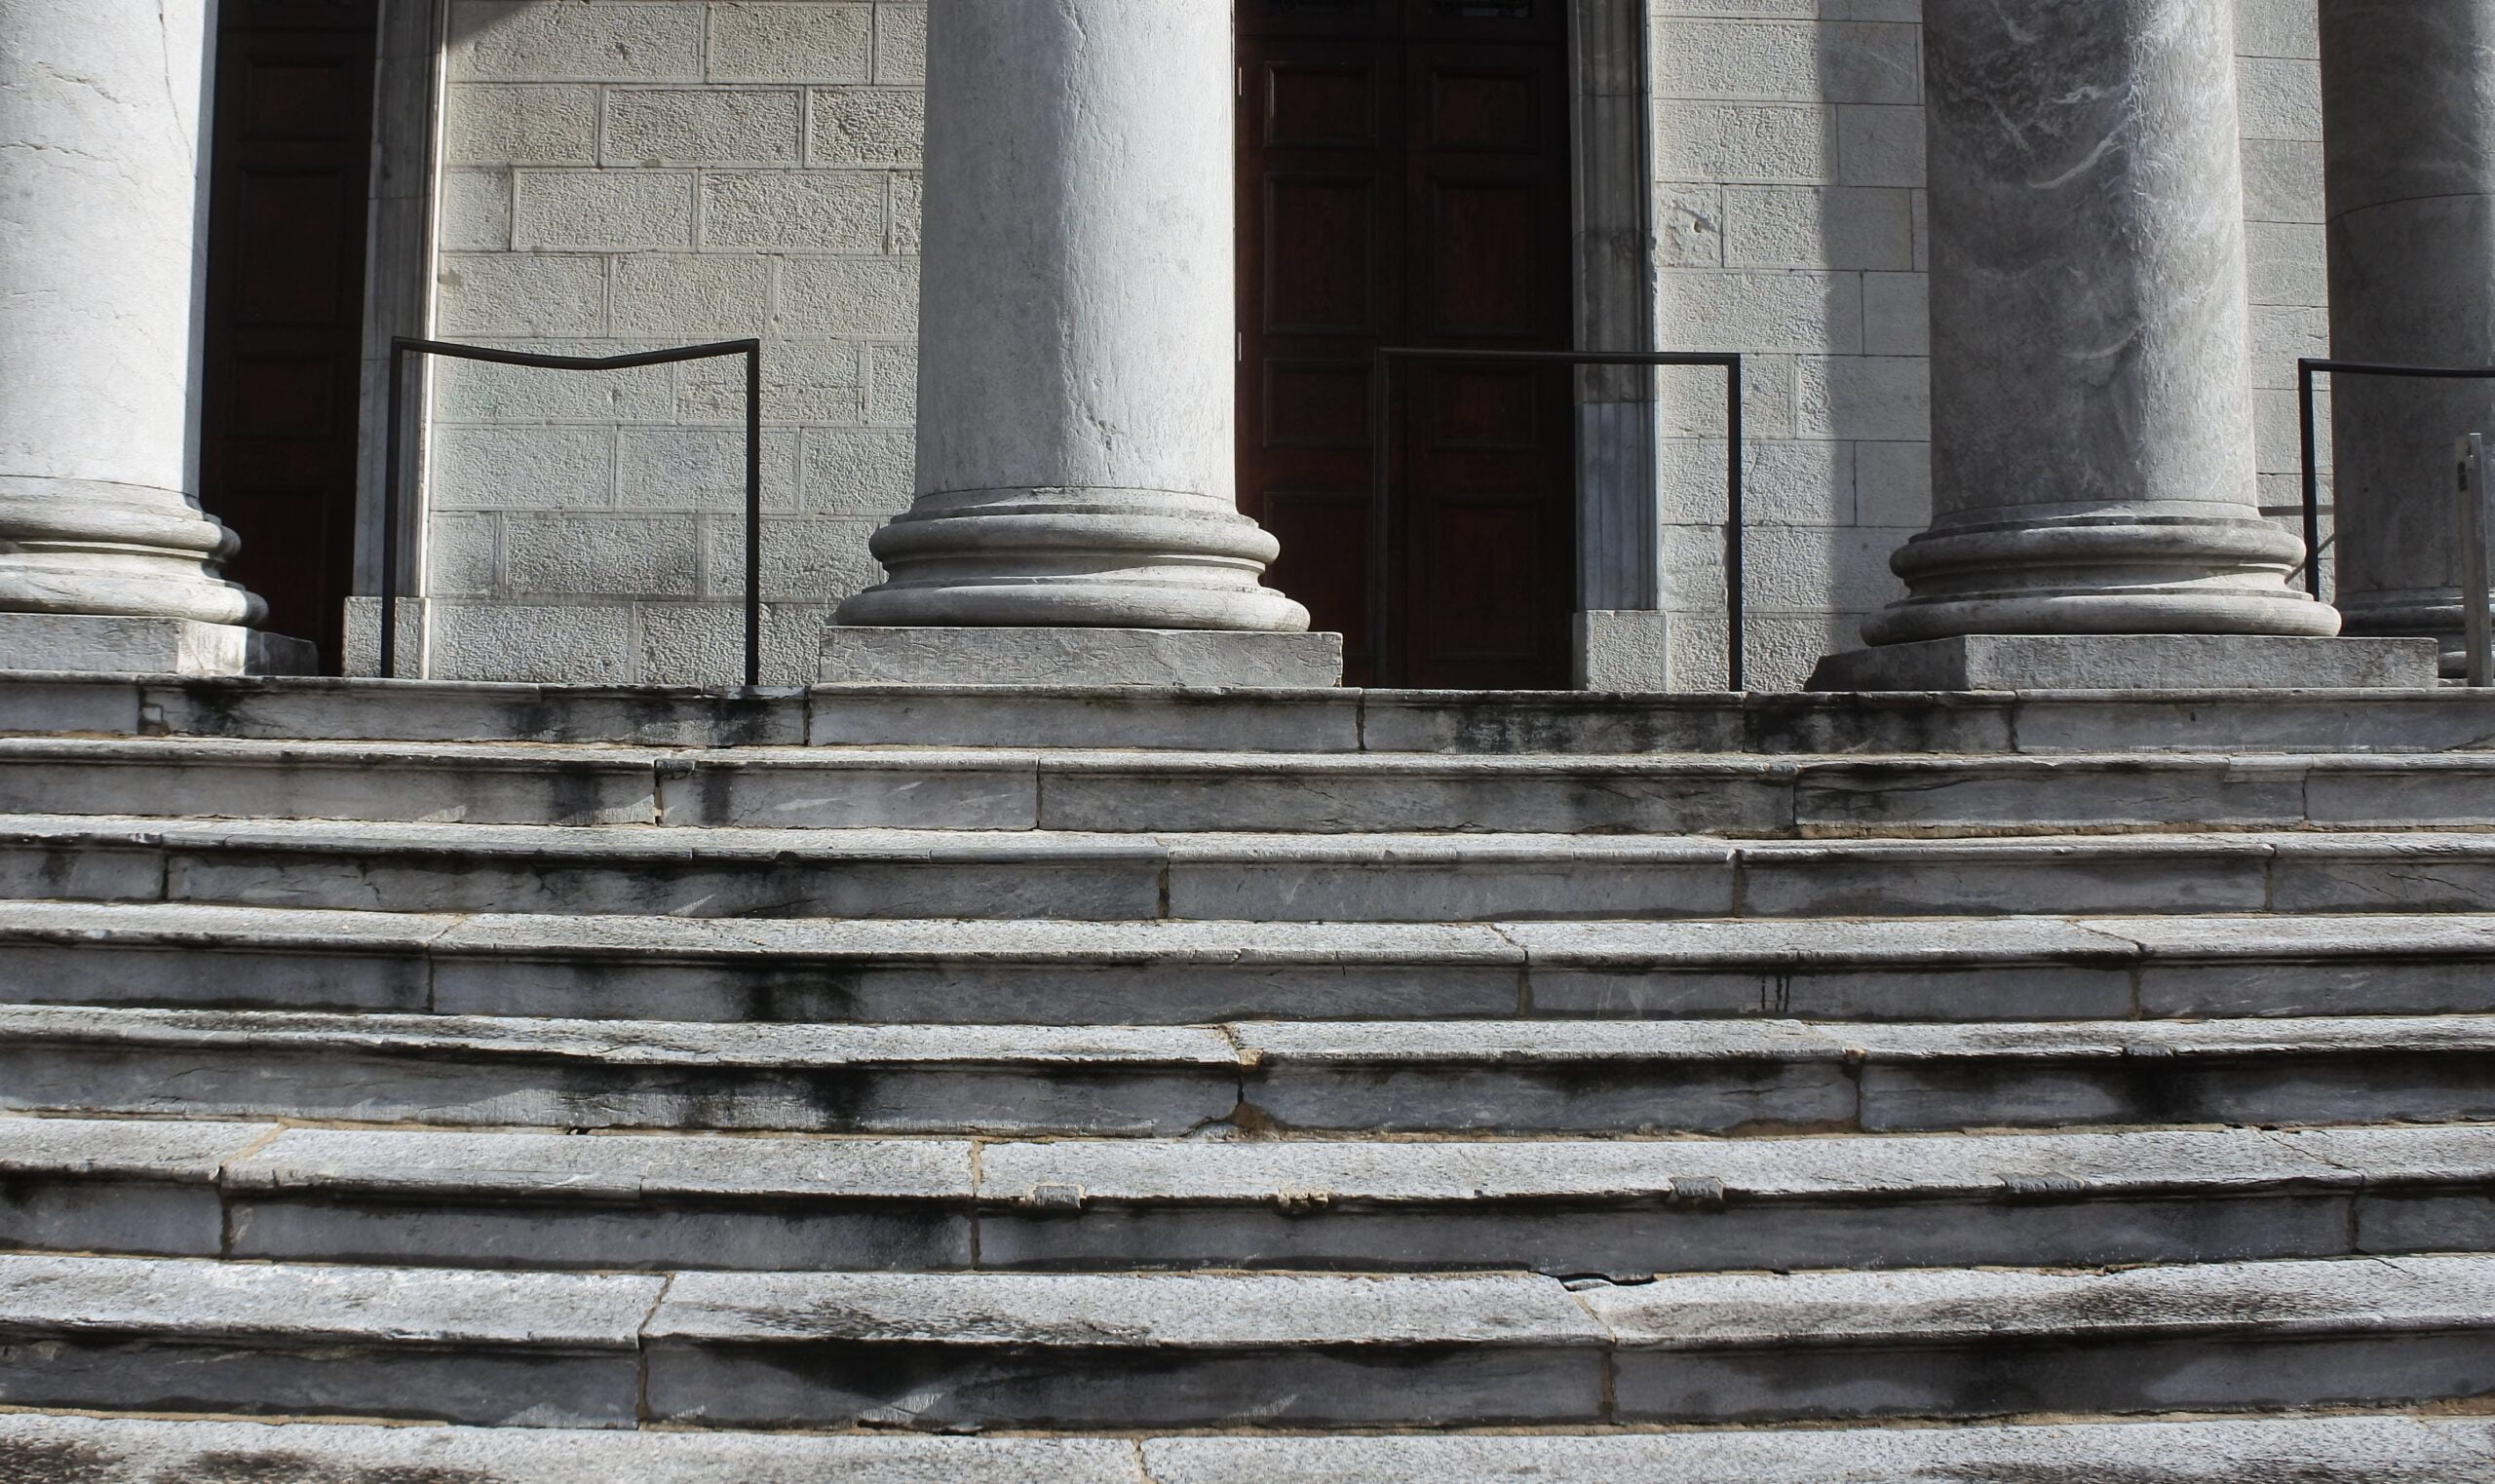 Court steps with columns